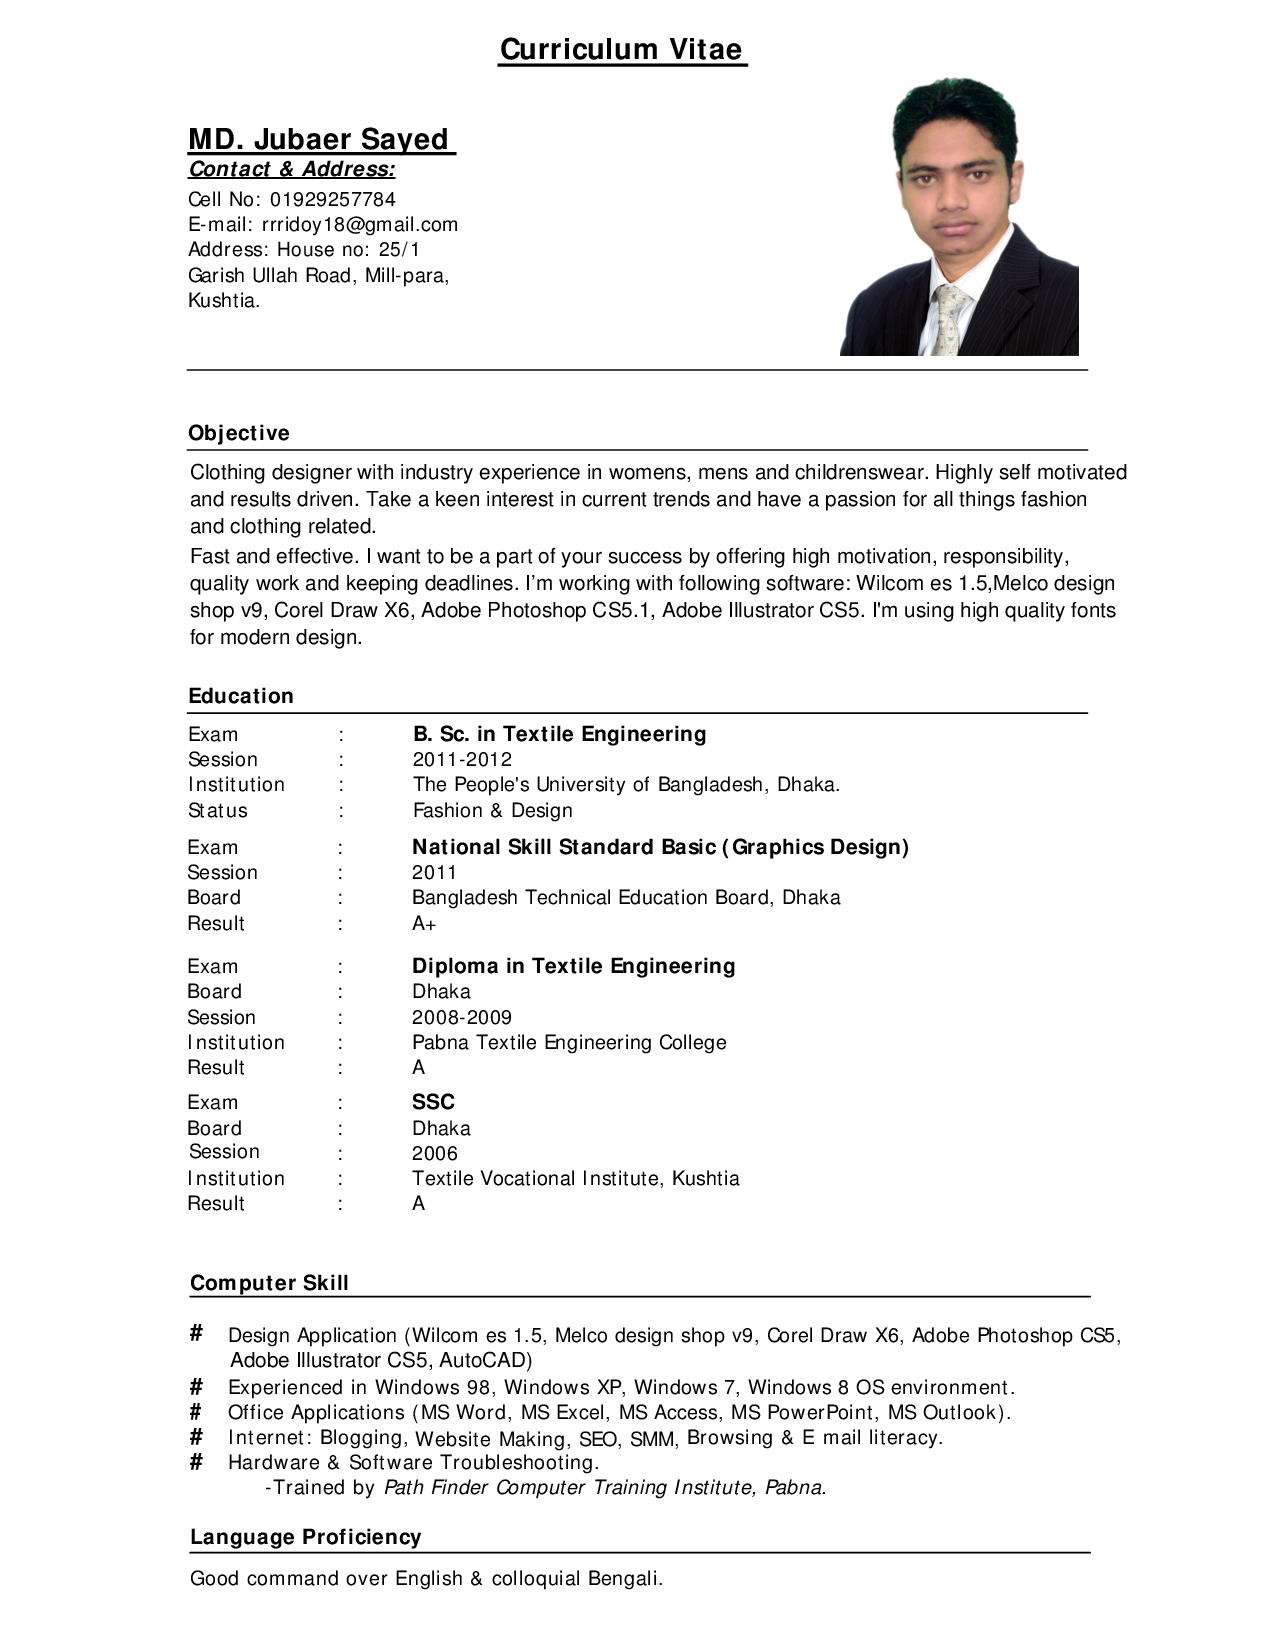 Resume Education Example Example Resume Computer Skills And Education For